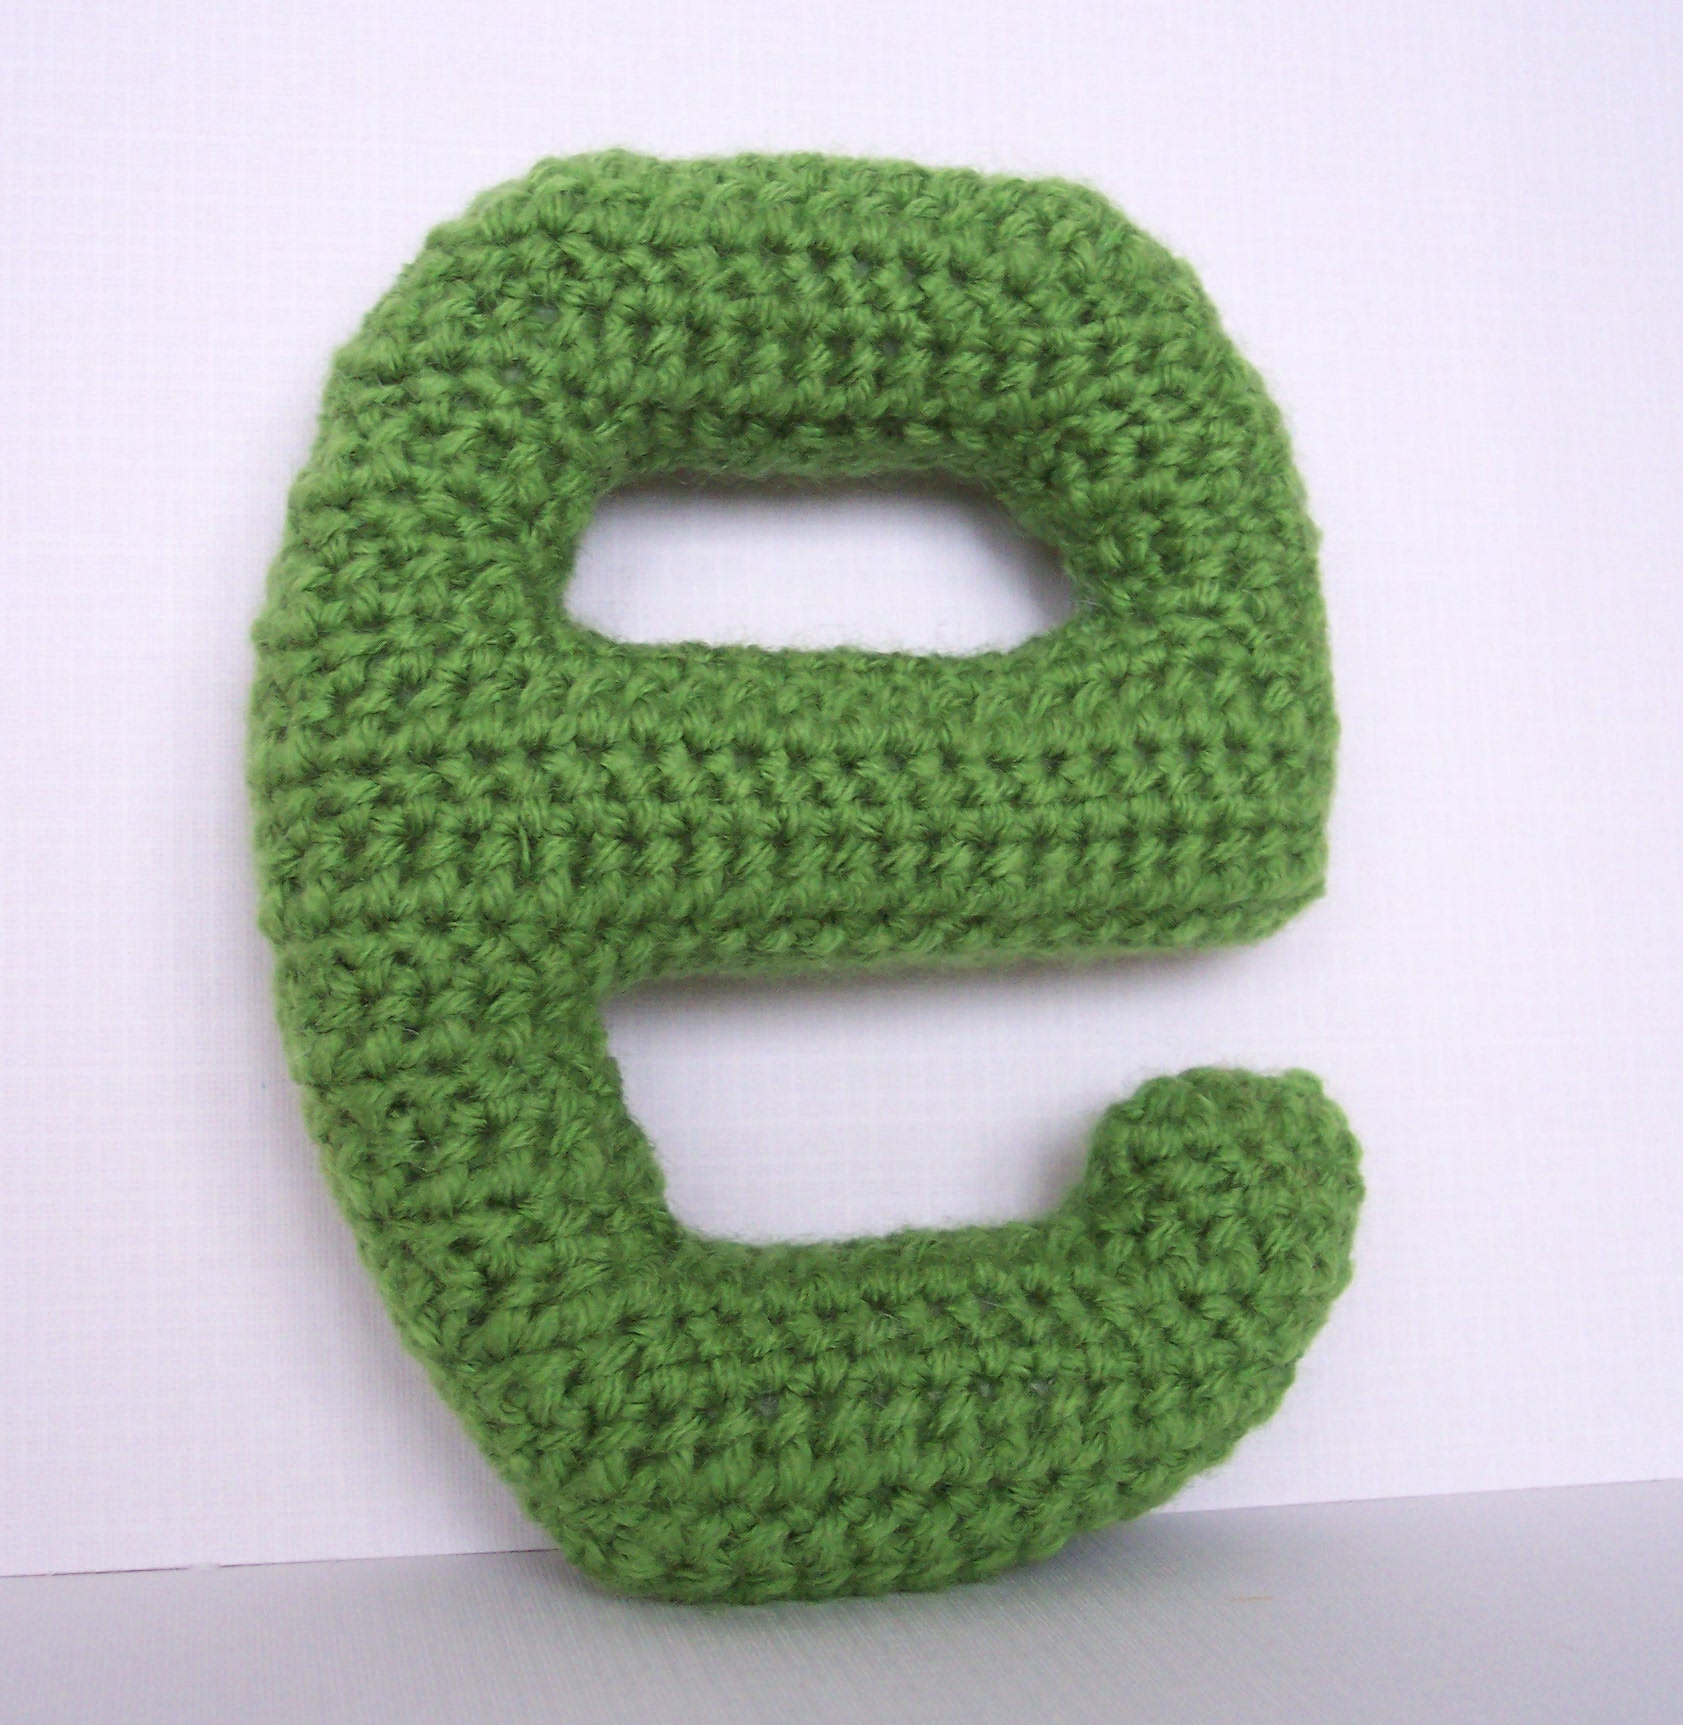 Time For Another Free Alphabet Letter Crochet Pattern « Laura's